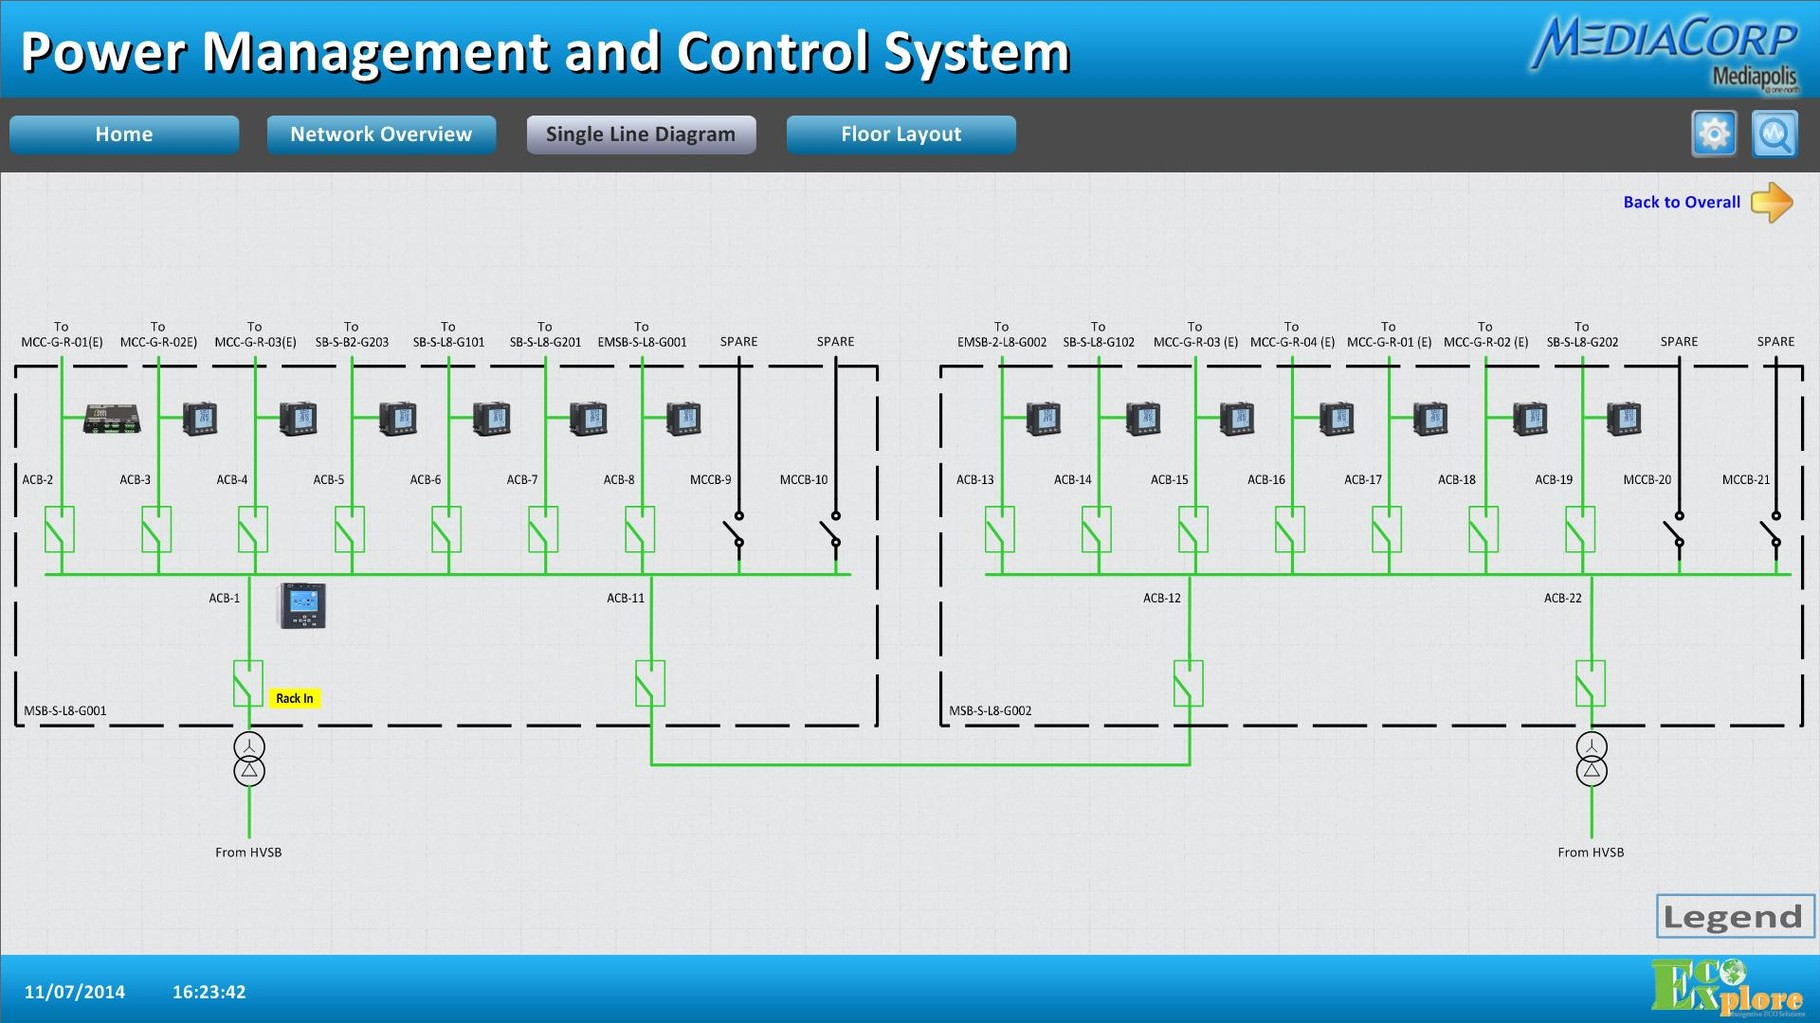 Energy Management System for a Media Complex in Singapore